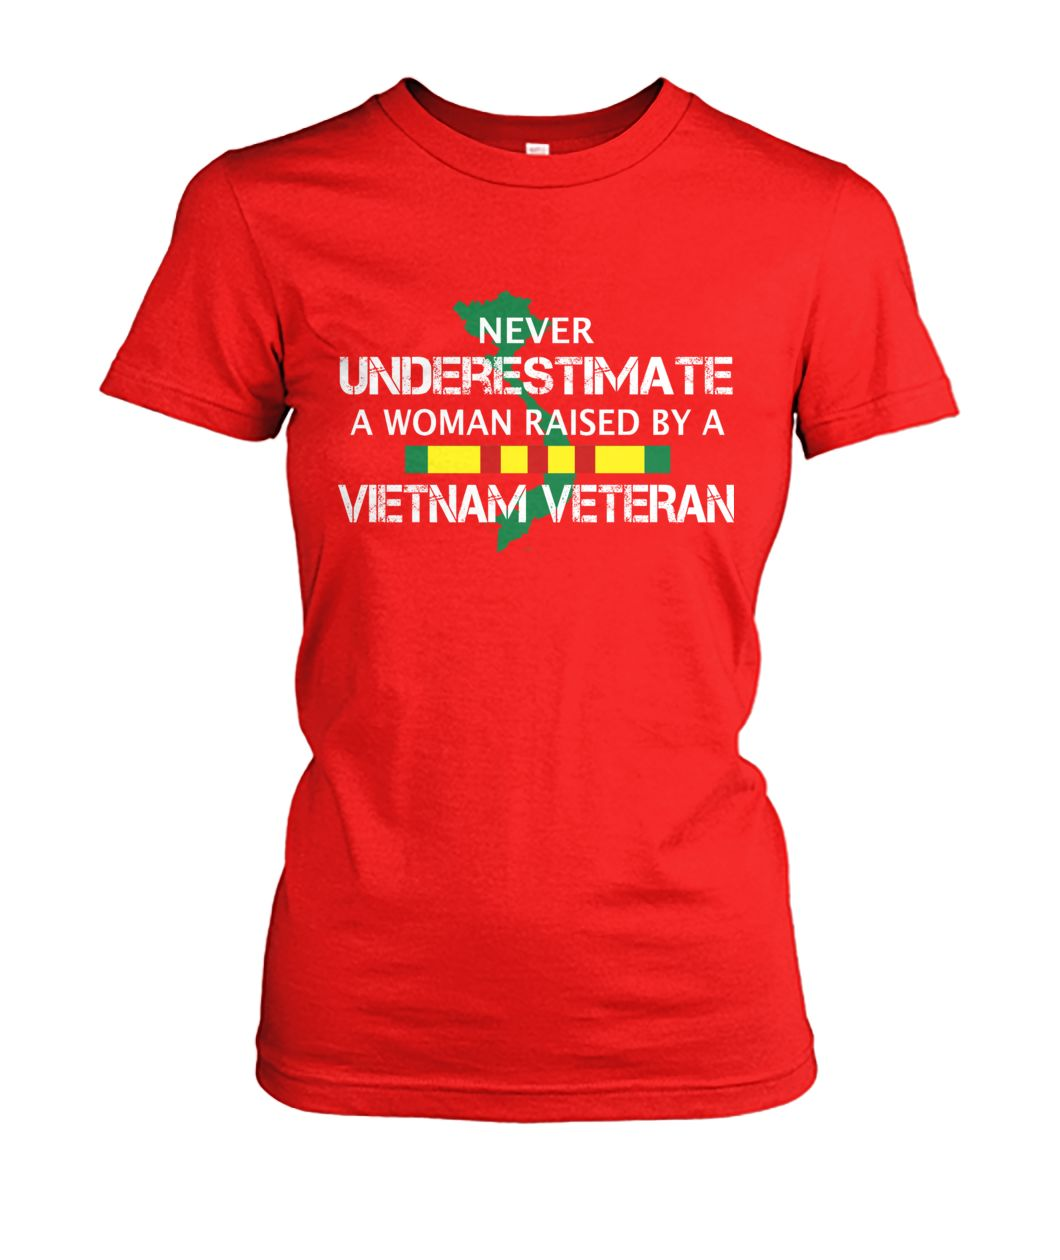 Never underestimate a woman raised by a vietnam veteran wp